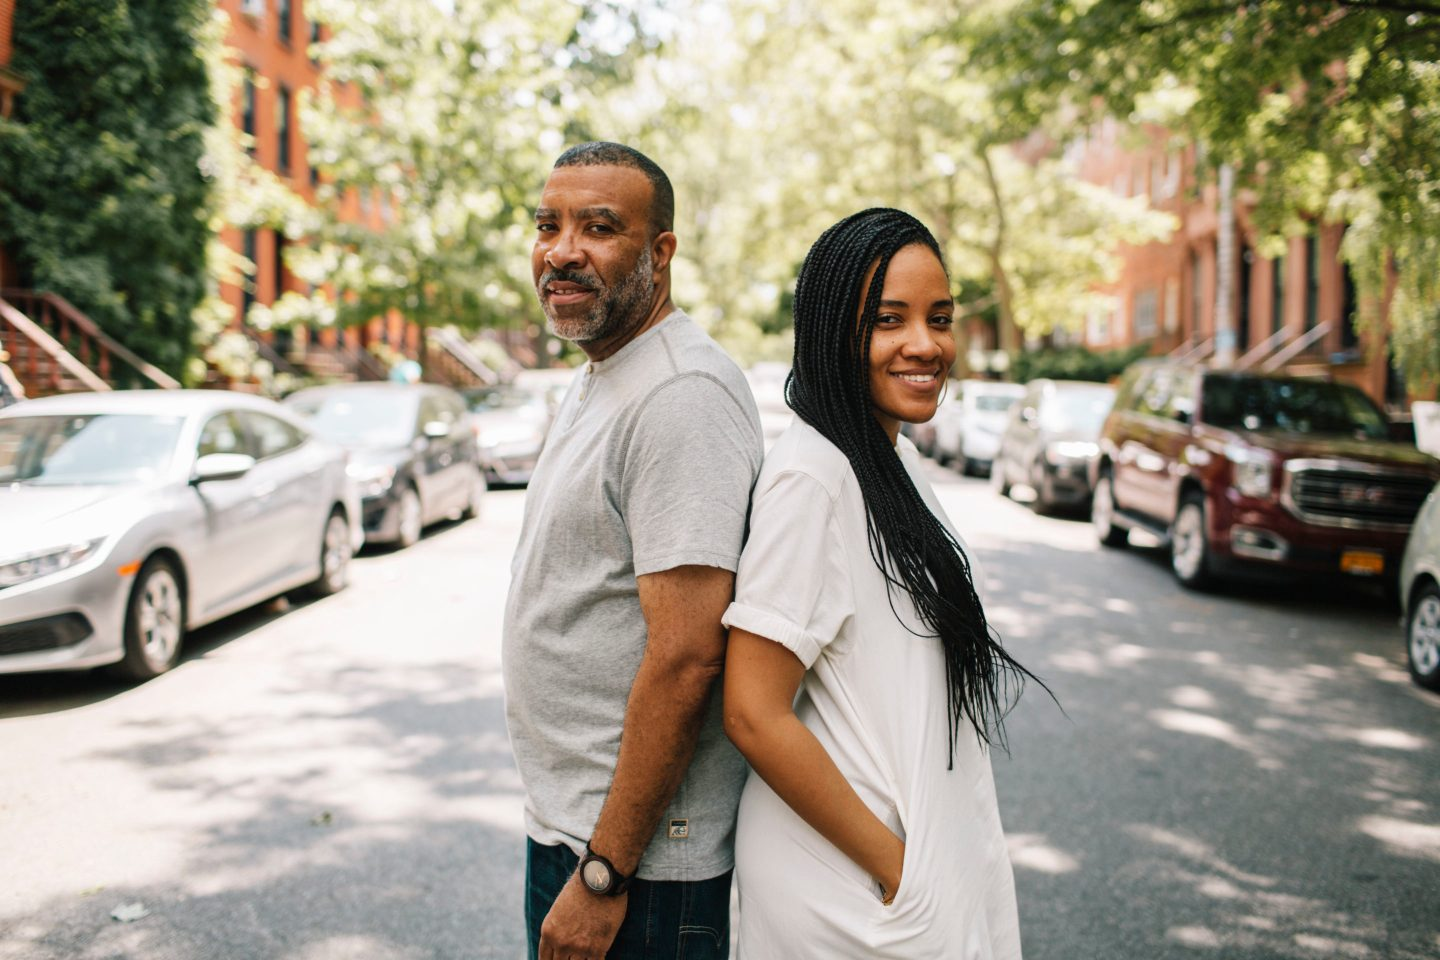 Men and Dating: 5 Lessons I Learned from My Dad